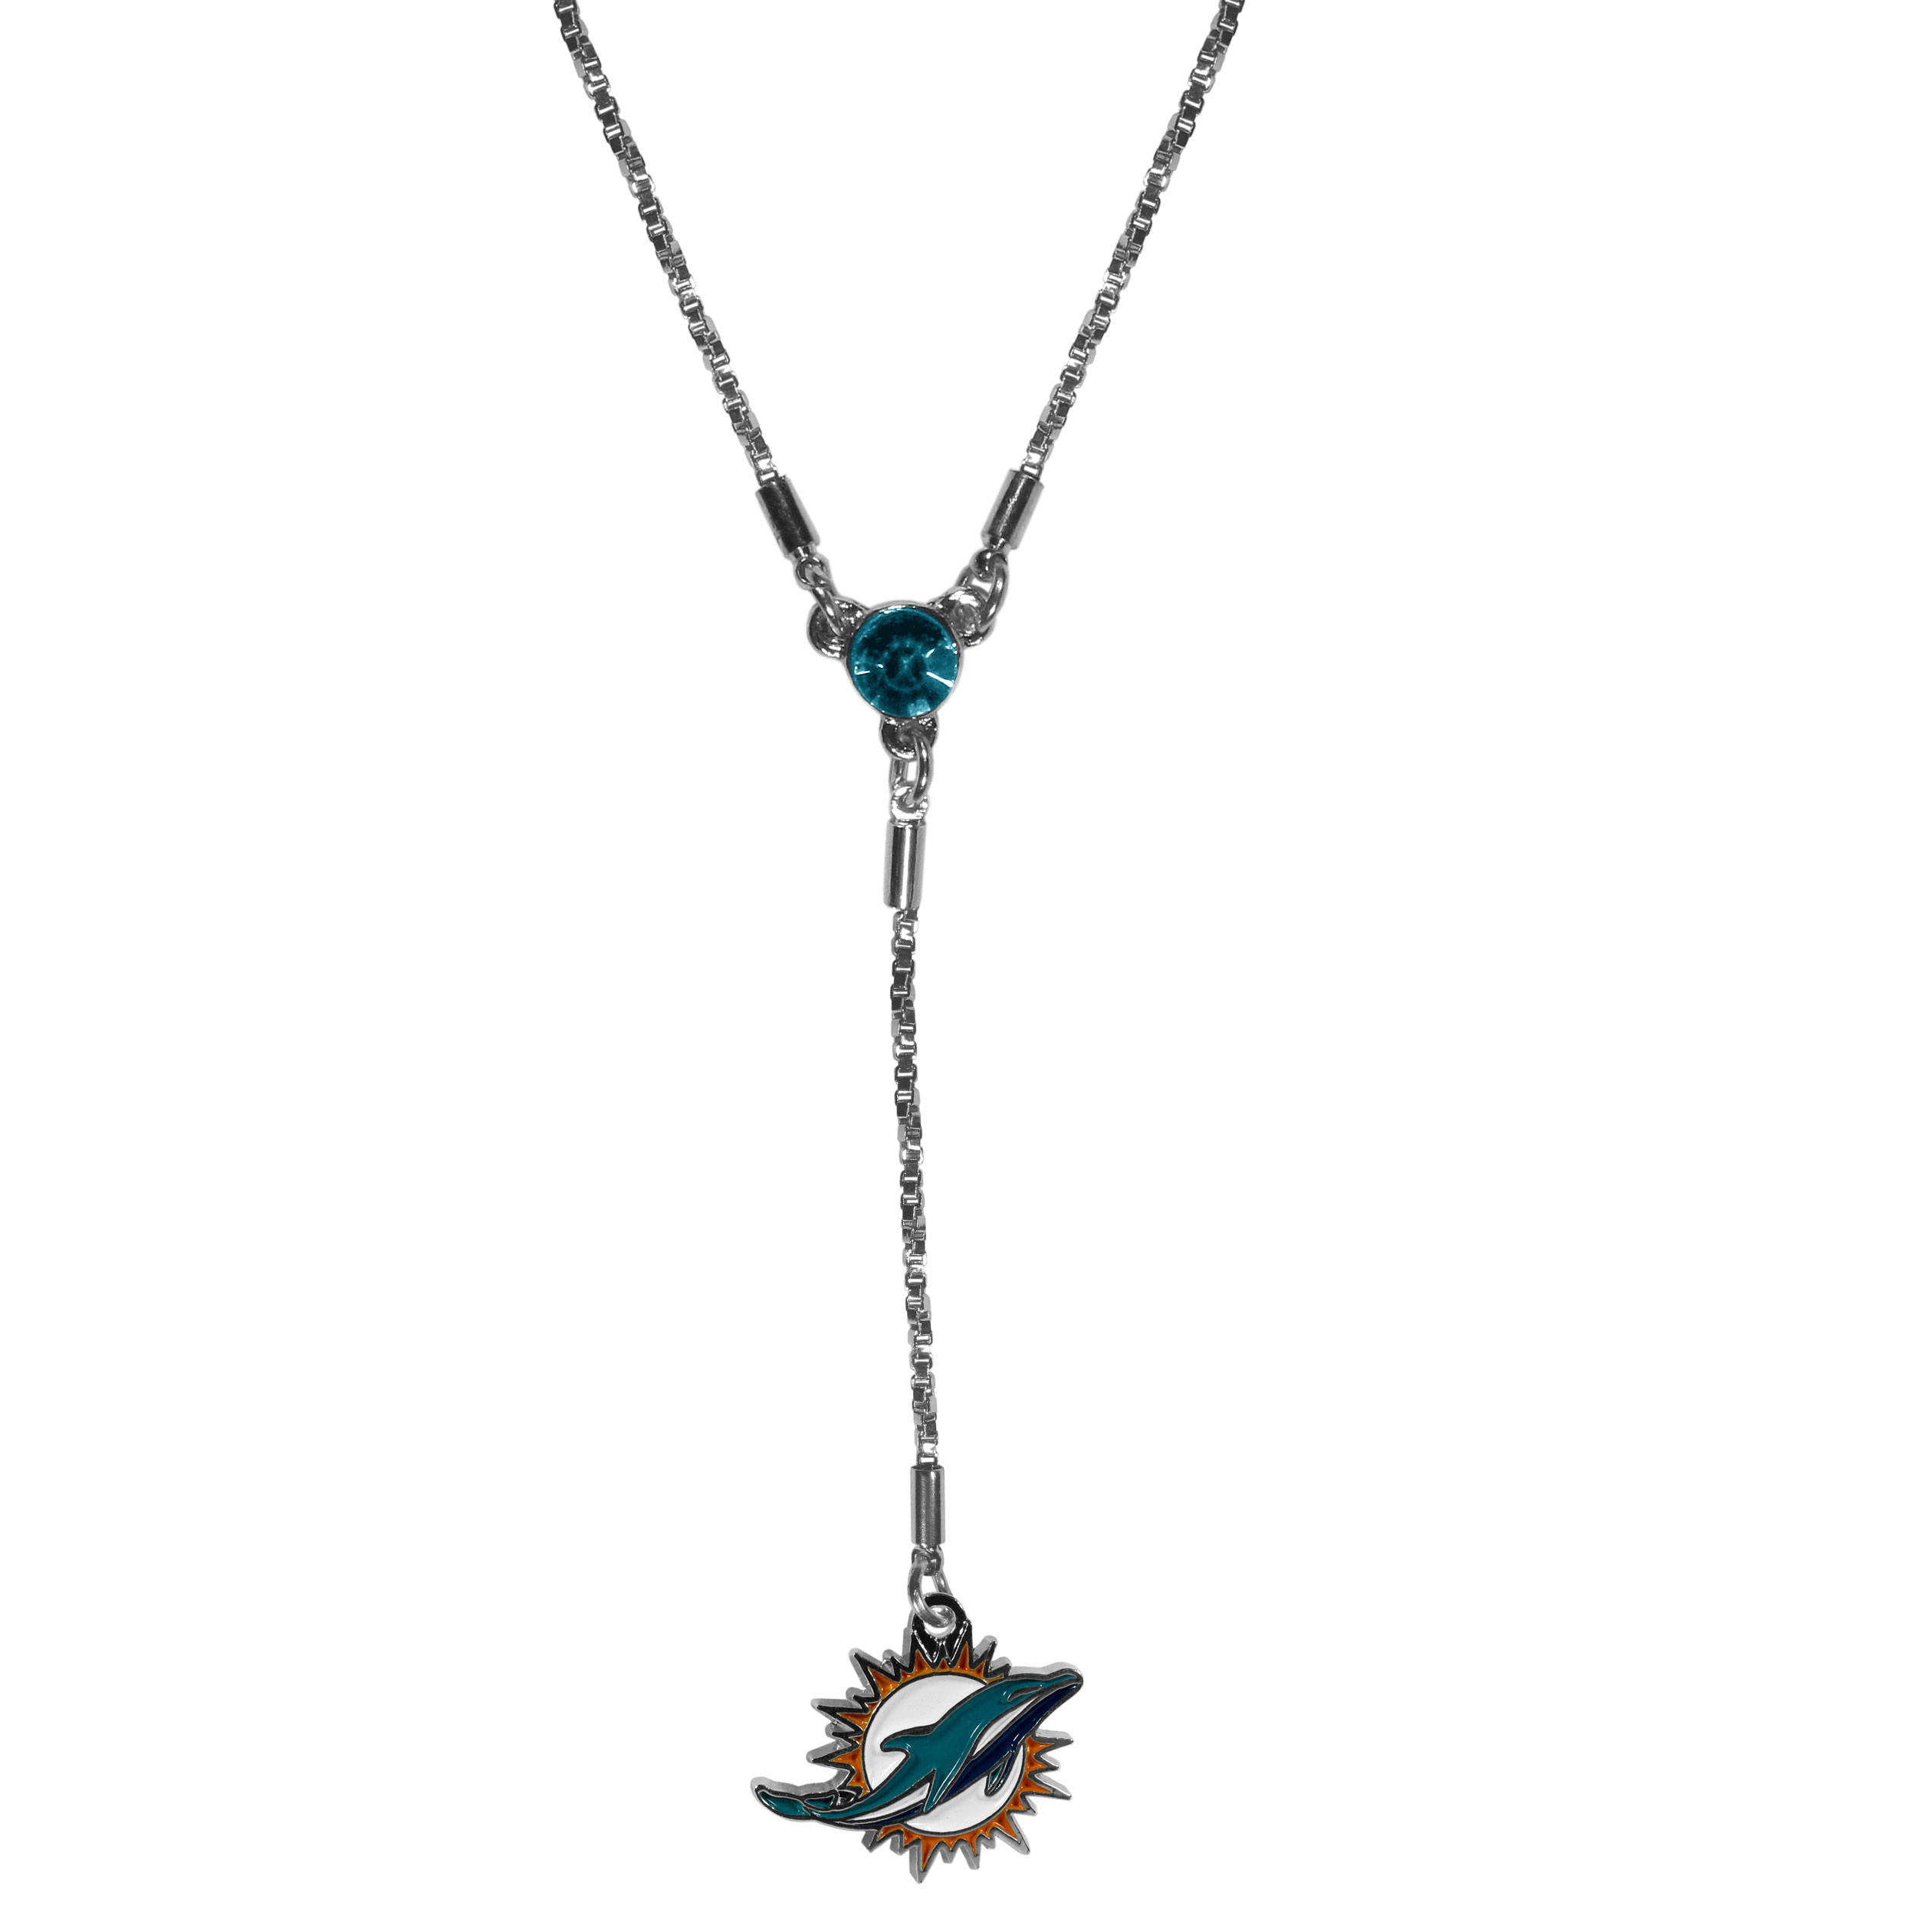 Miami Dolphins Lariat Necklace - This designer look is a stylish version of the classic lariat necklace. The chic box chain is 16 inches long with a 2 inch extender, the Y drop features a large team colored crystal with an expertly carved team charm. This trendy look is a perfect blend of sporty and chic making is a mush-have fashion accessory for the fashion-forward Miami Dolphins fan.